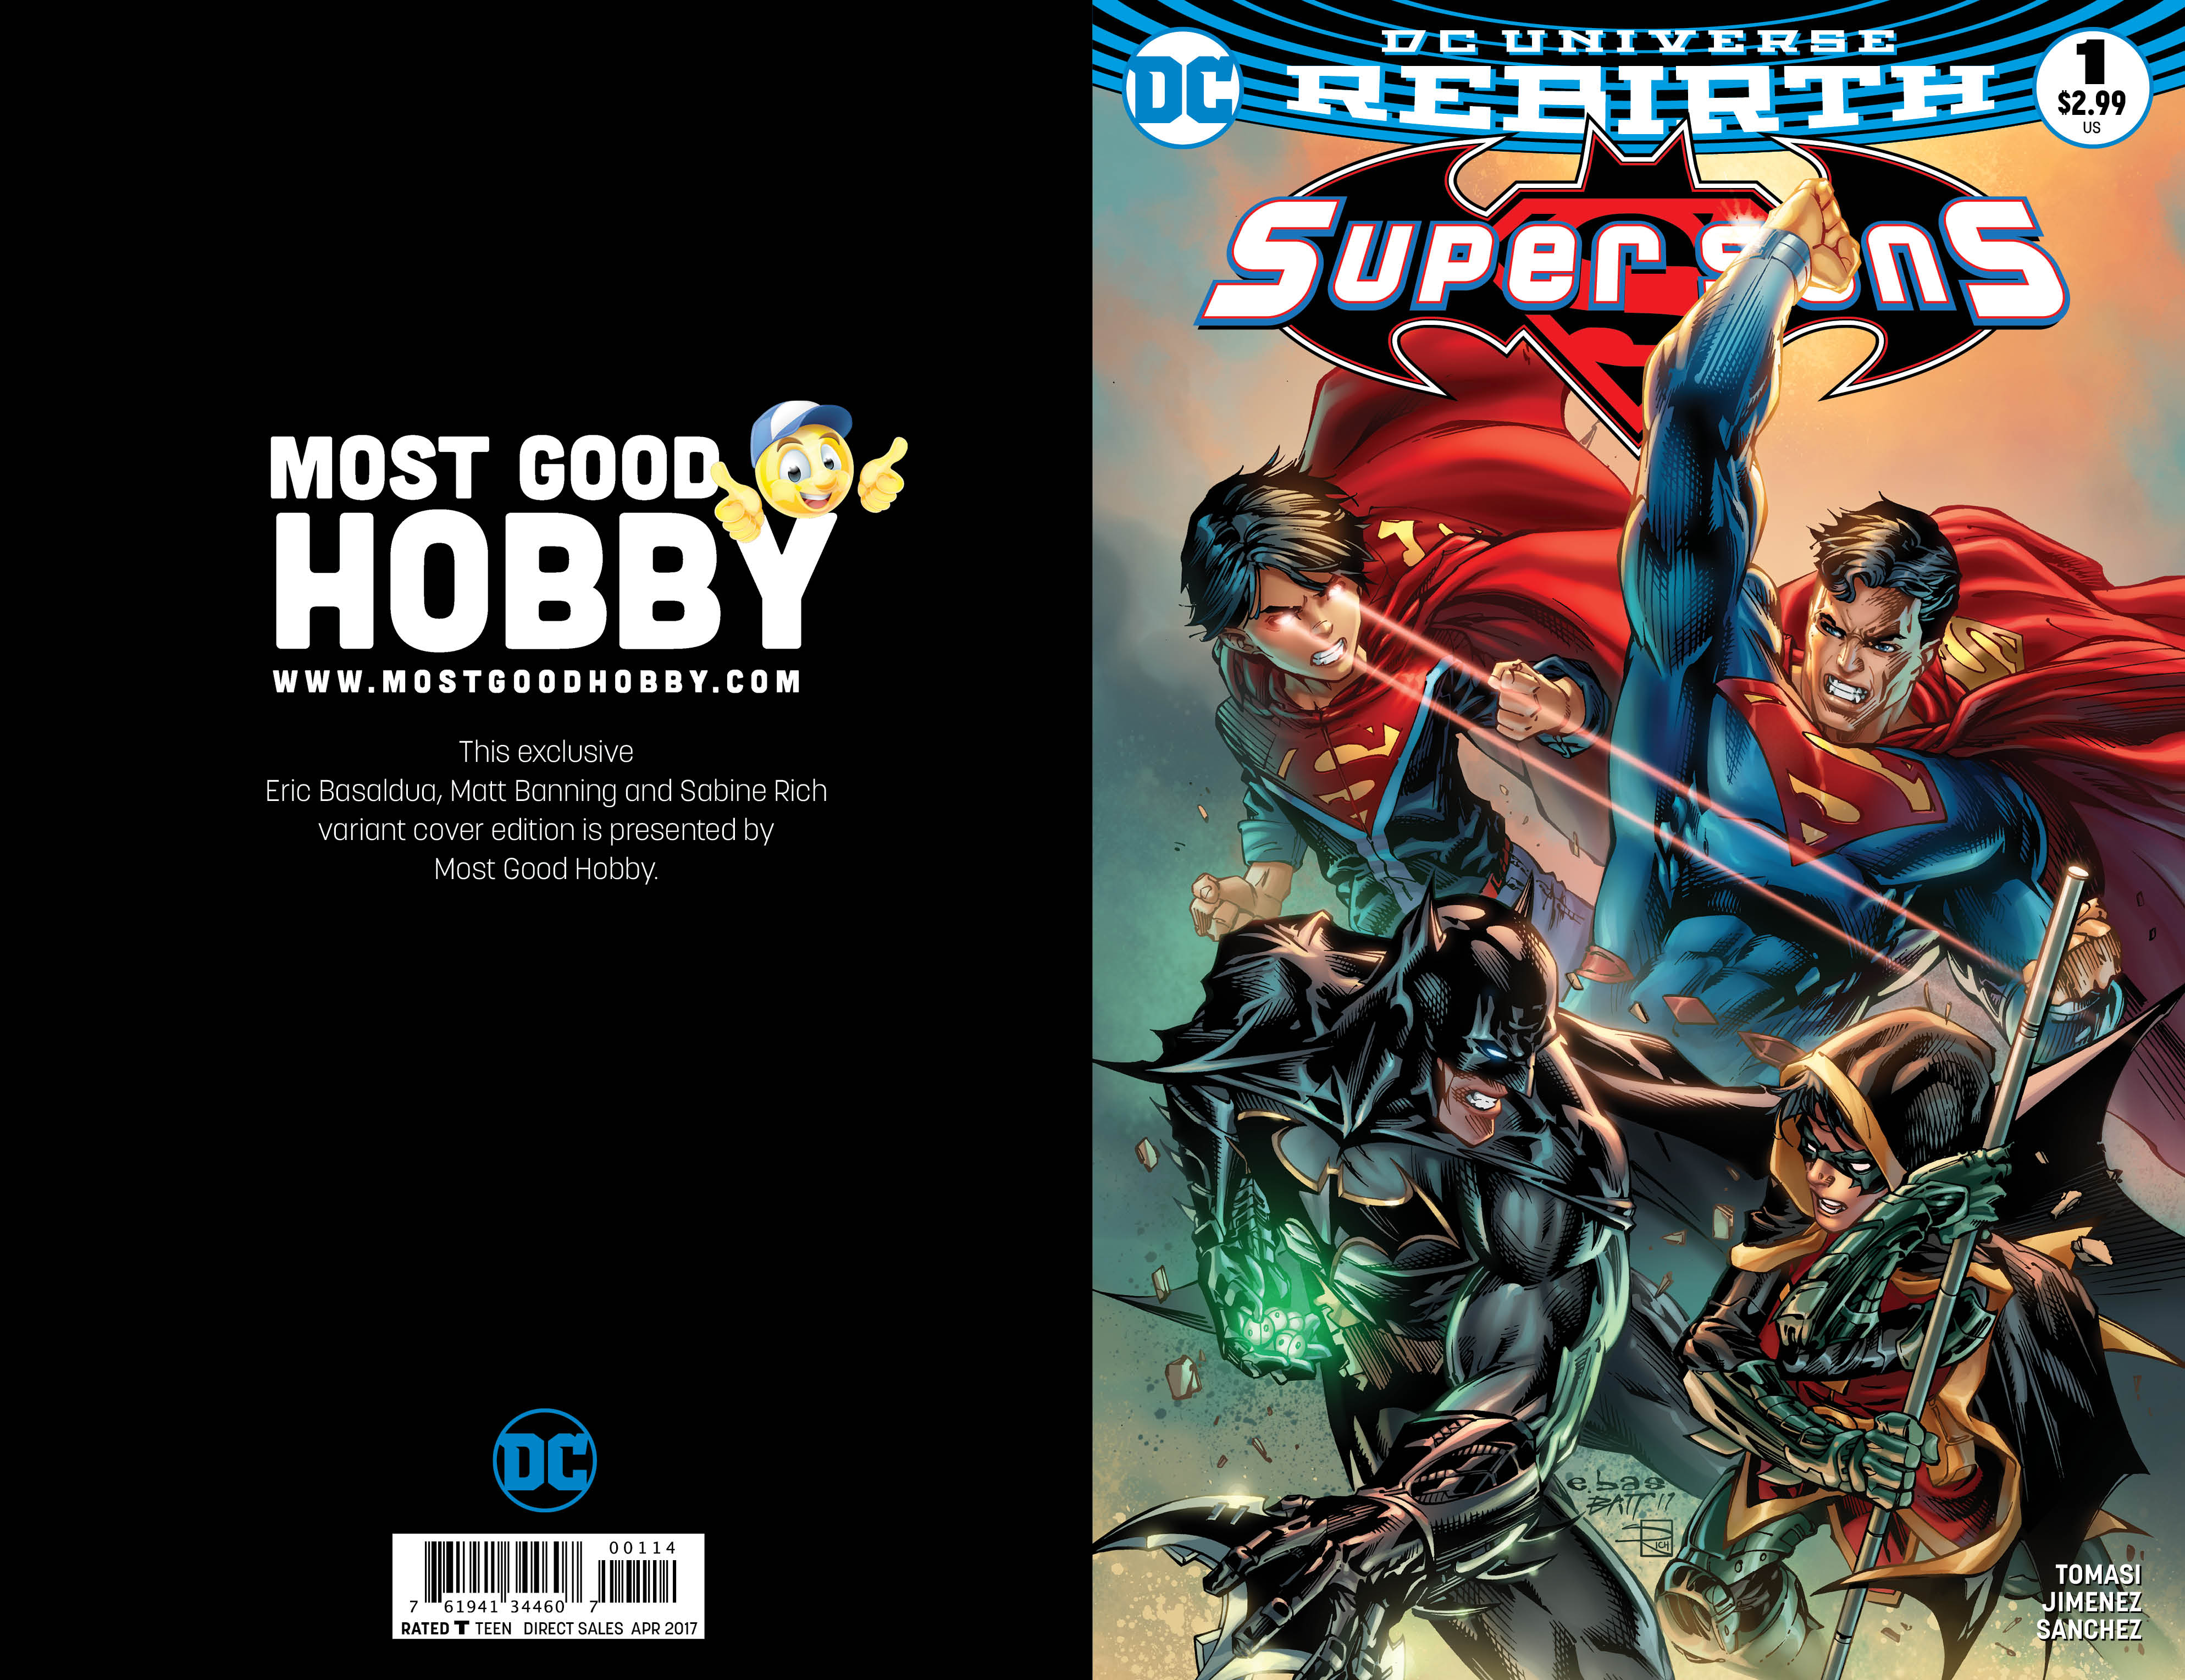 Super Sons #1 Most Good Exclusive EBAS Variant (REBIRTH)